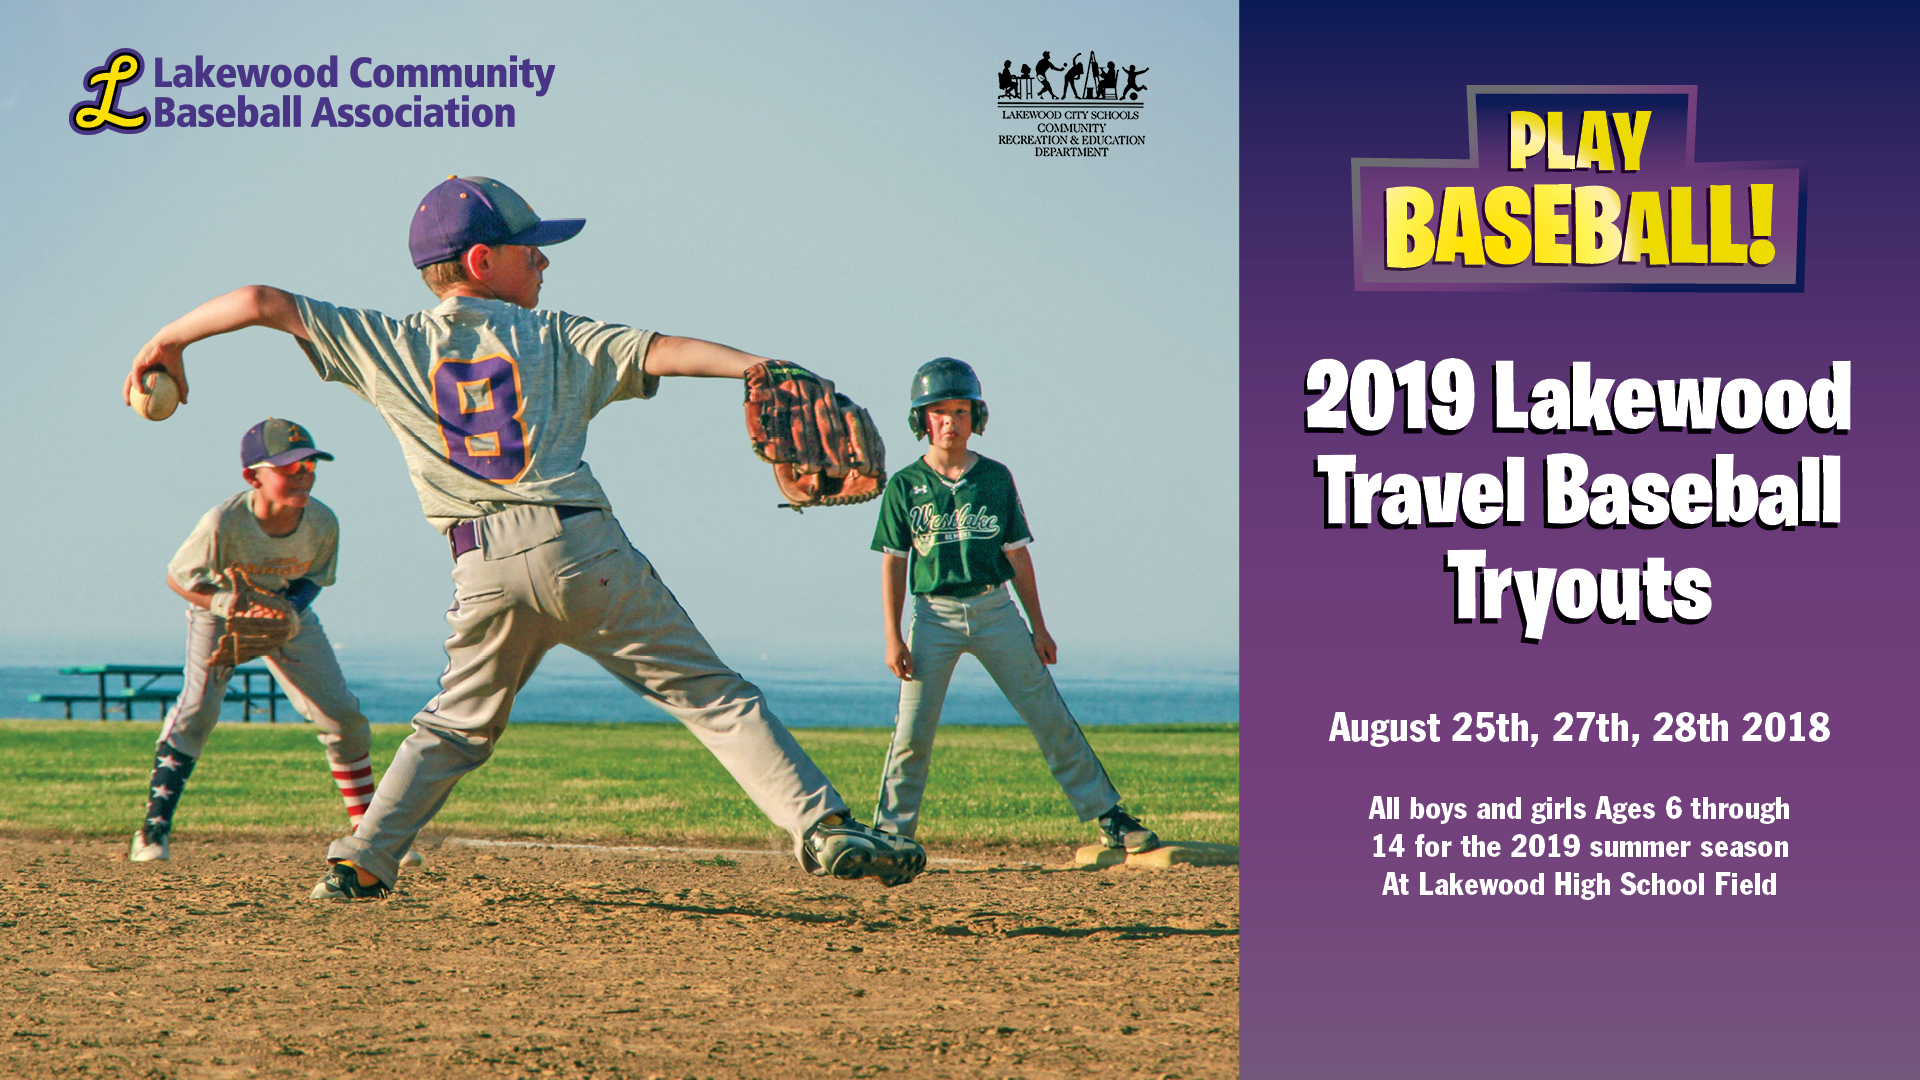 Lakewood Travel Baseball Tryouts for 2019